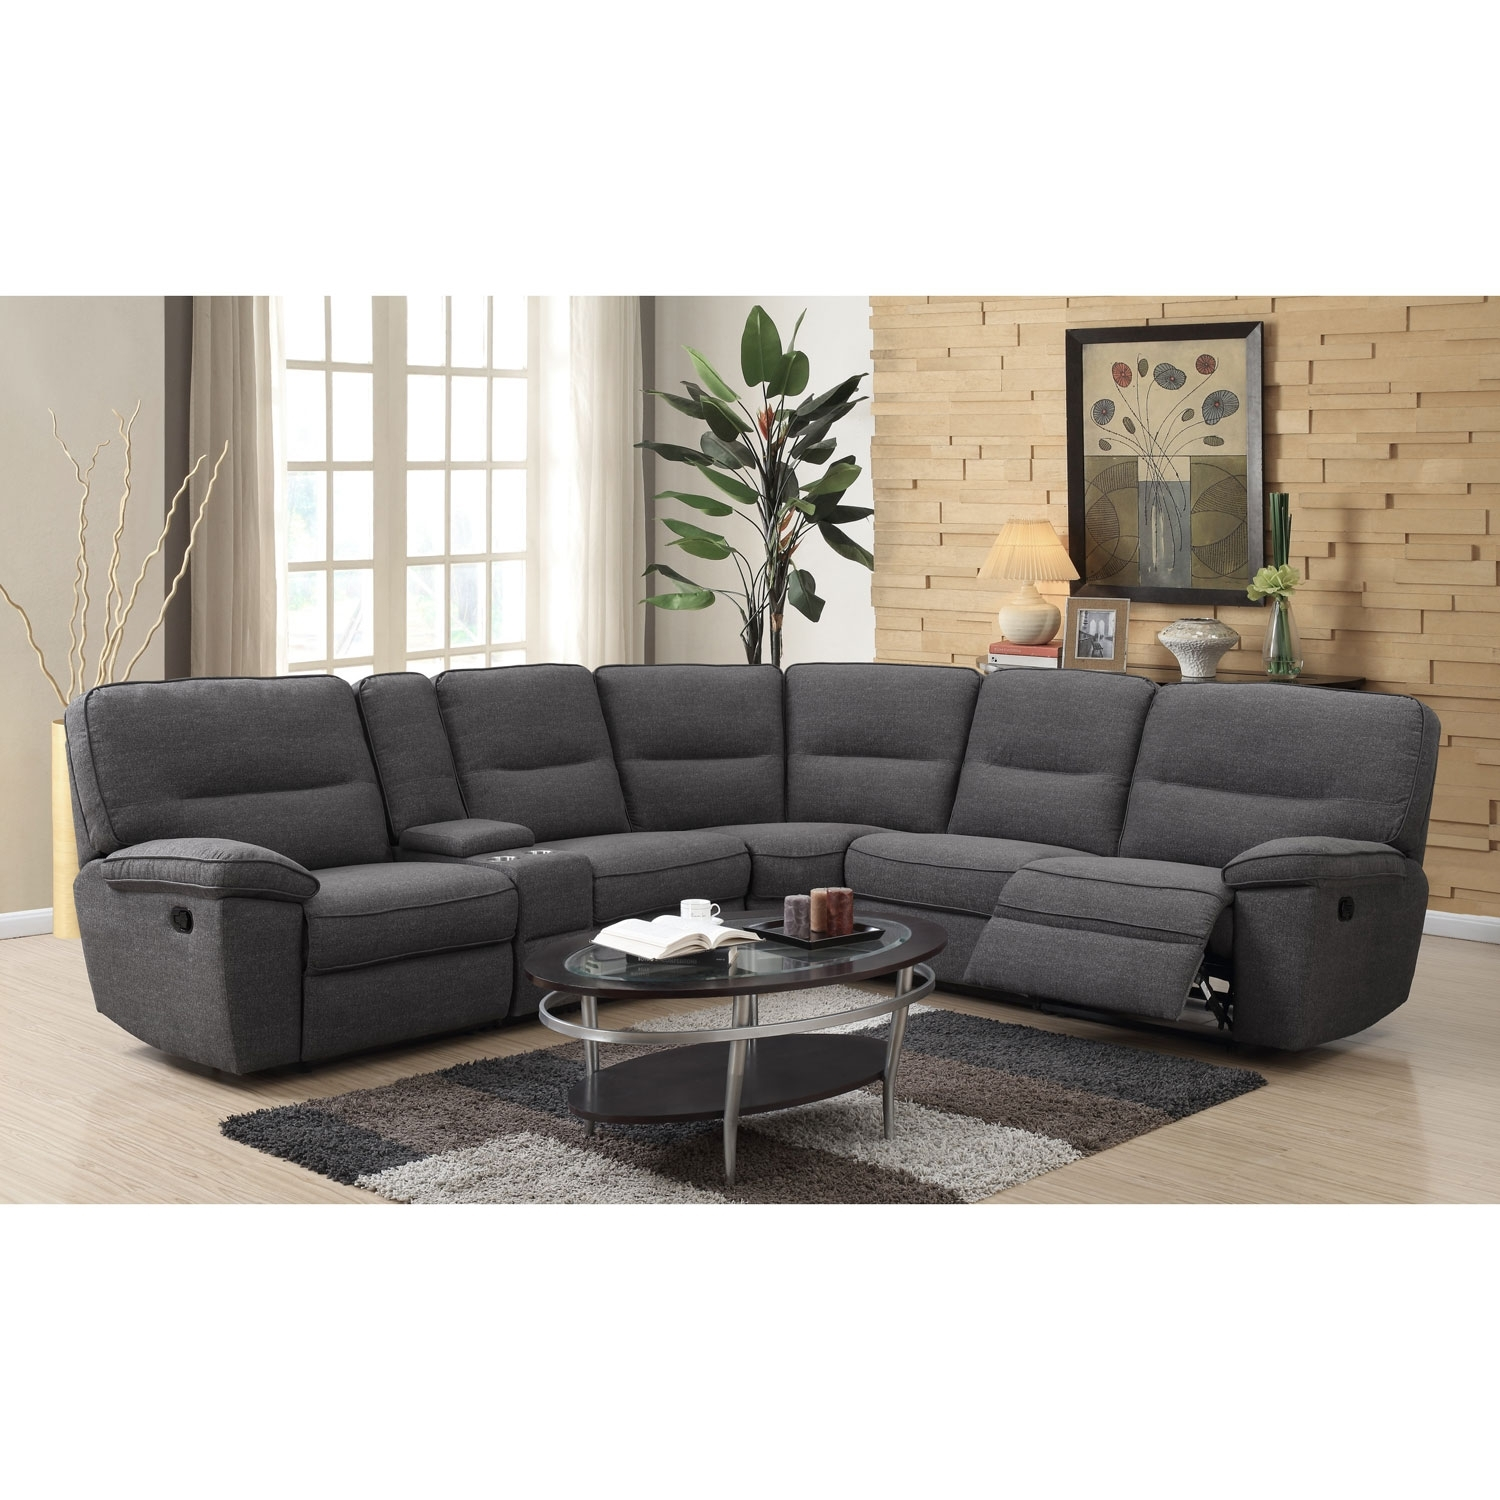 Emerald Home Furnishings Emerald Home Alberta 6 Piece Sectional Inside Norfolk Chocolate 6 Piece Sectionals With Laf Chaise (Gallery 28 of 30)